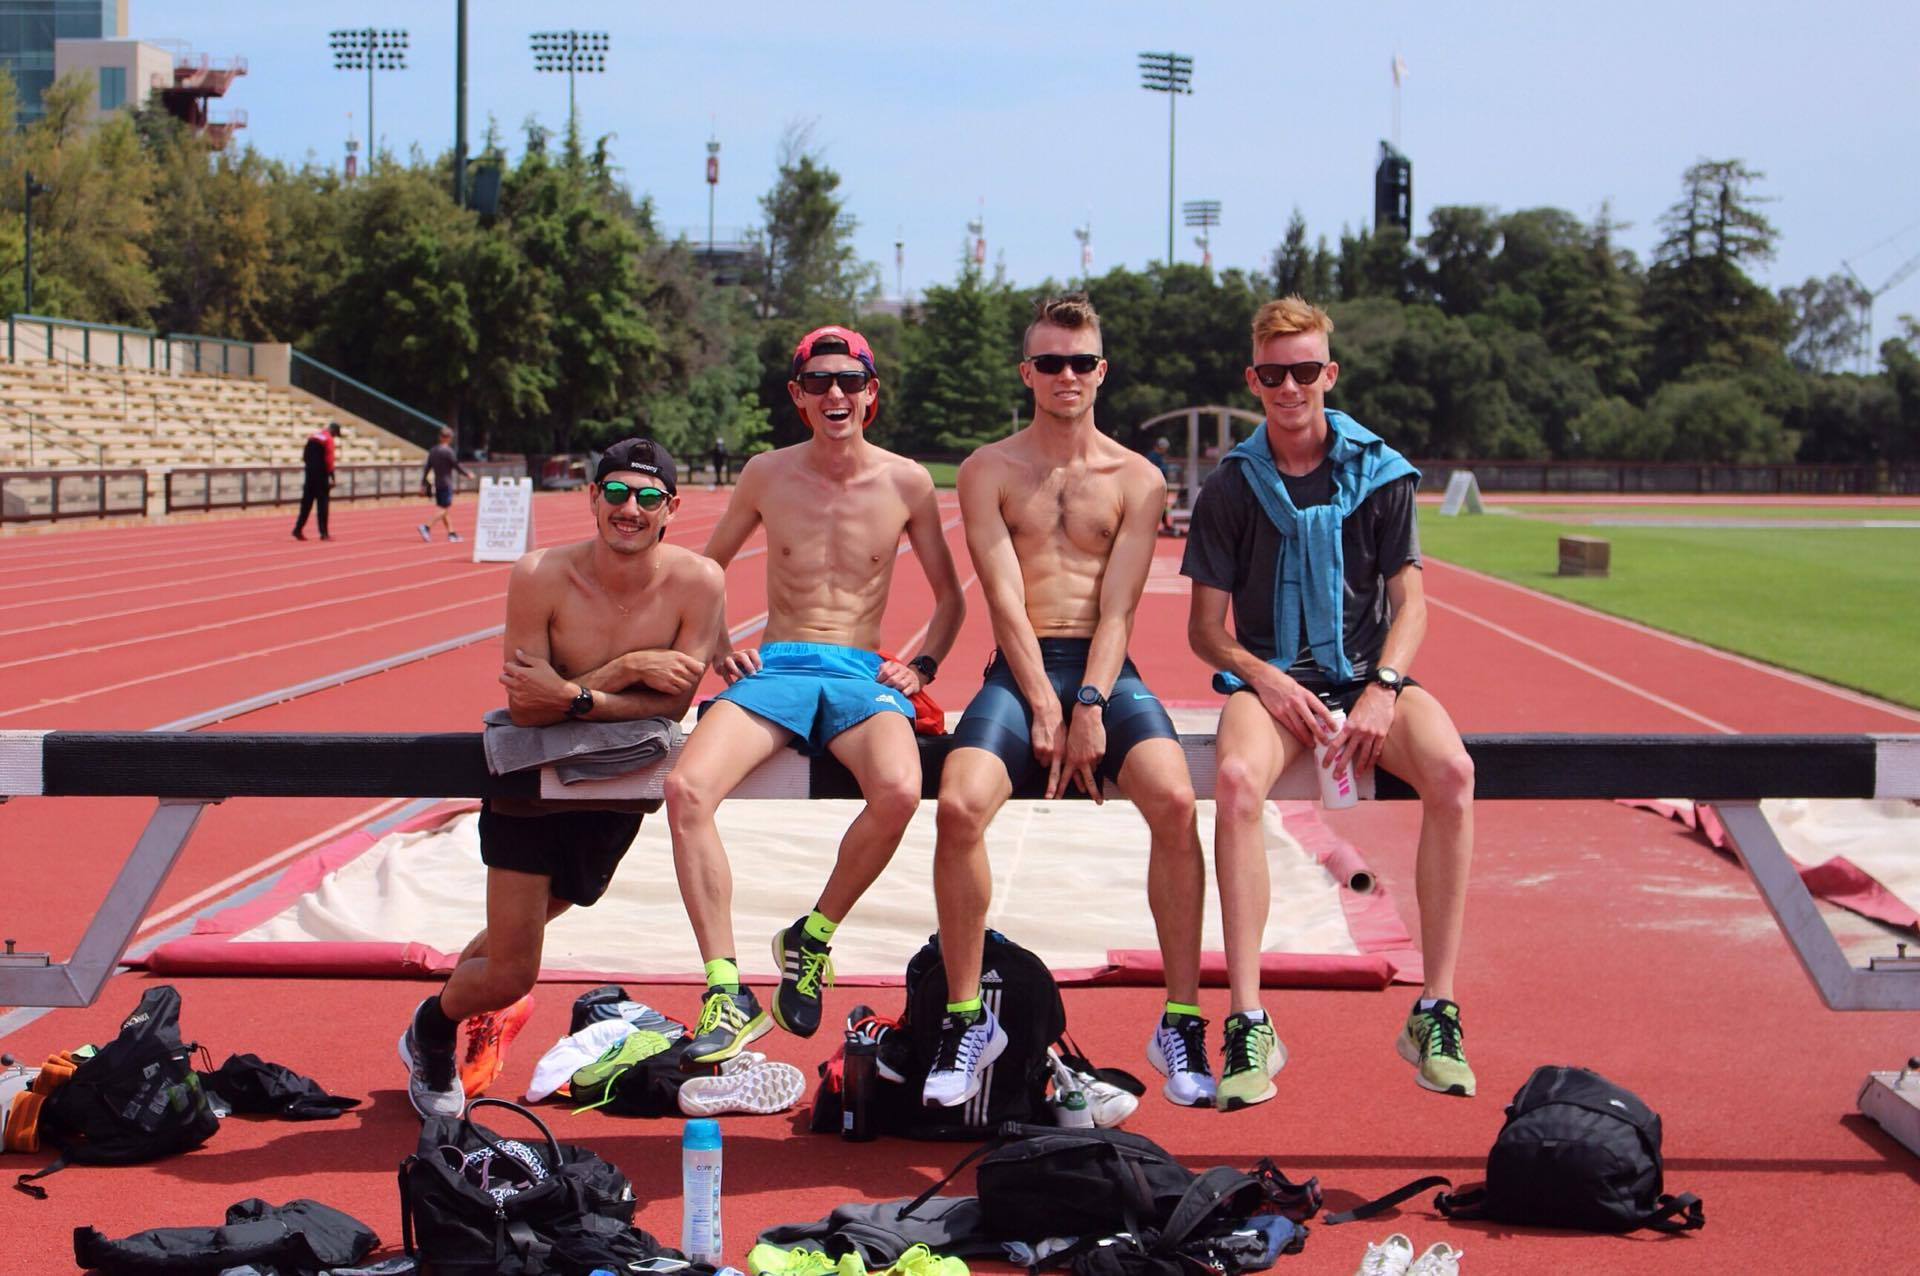 Jordan Gusman, Joshua F. Johnson and Matt Dempsey at Stanford Cobb Track and Angell Field.